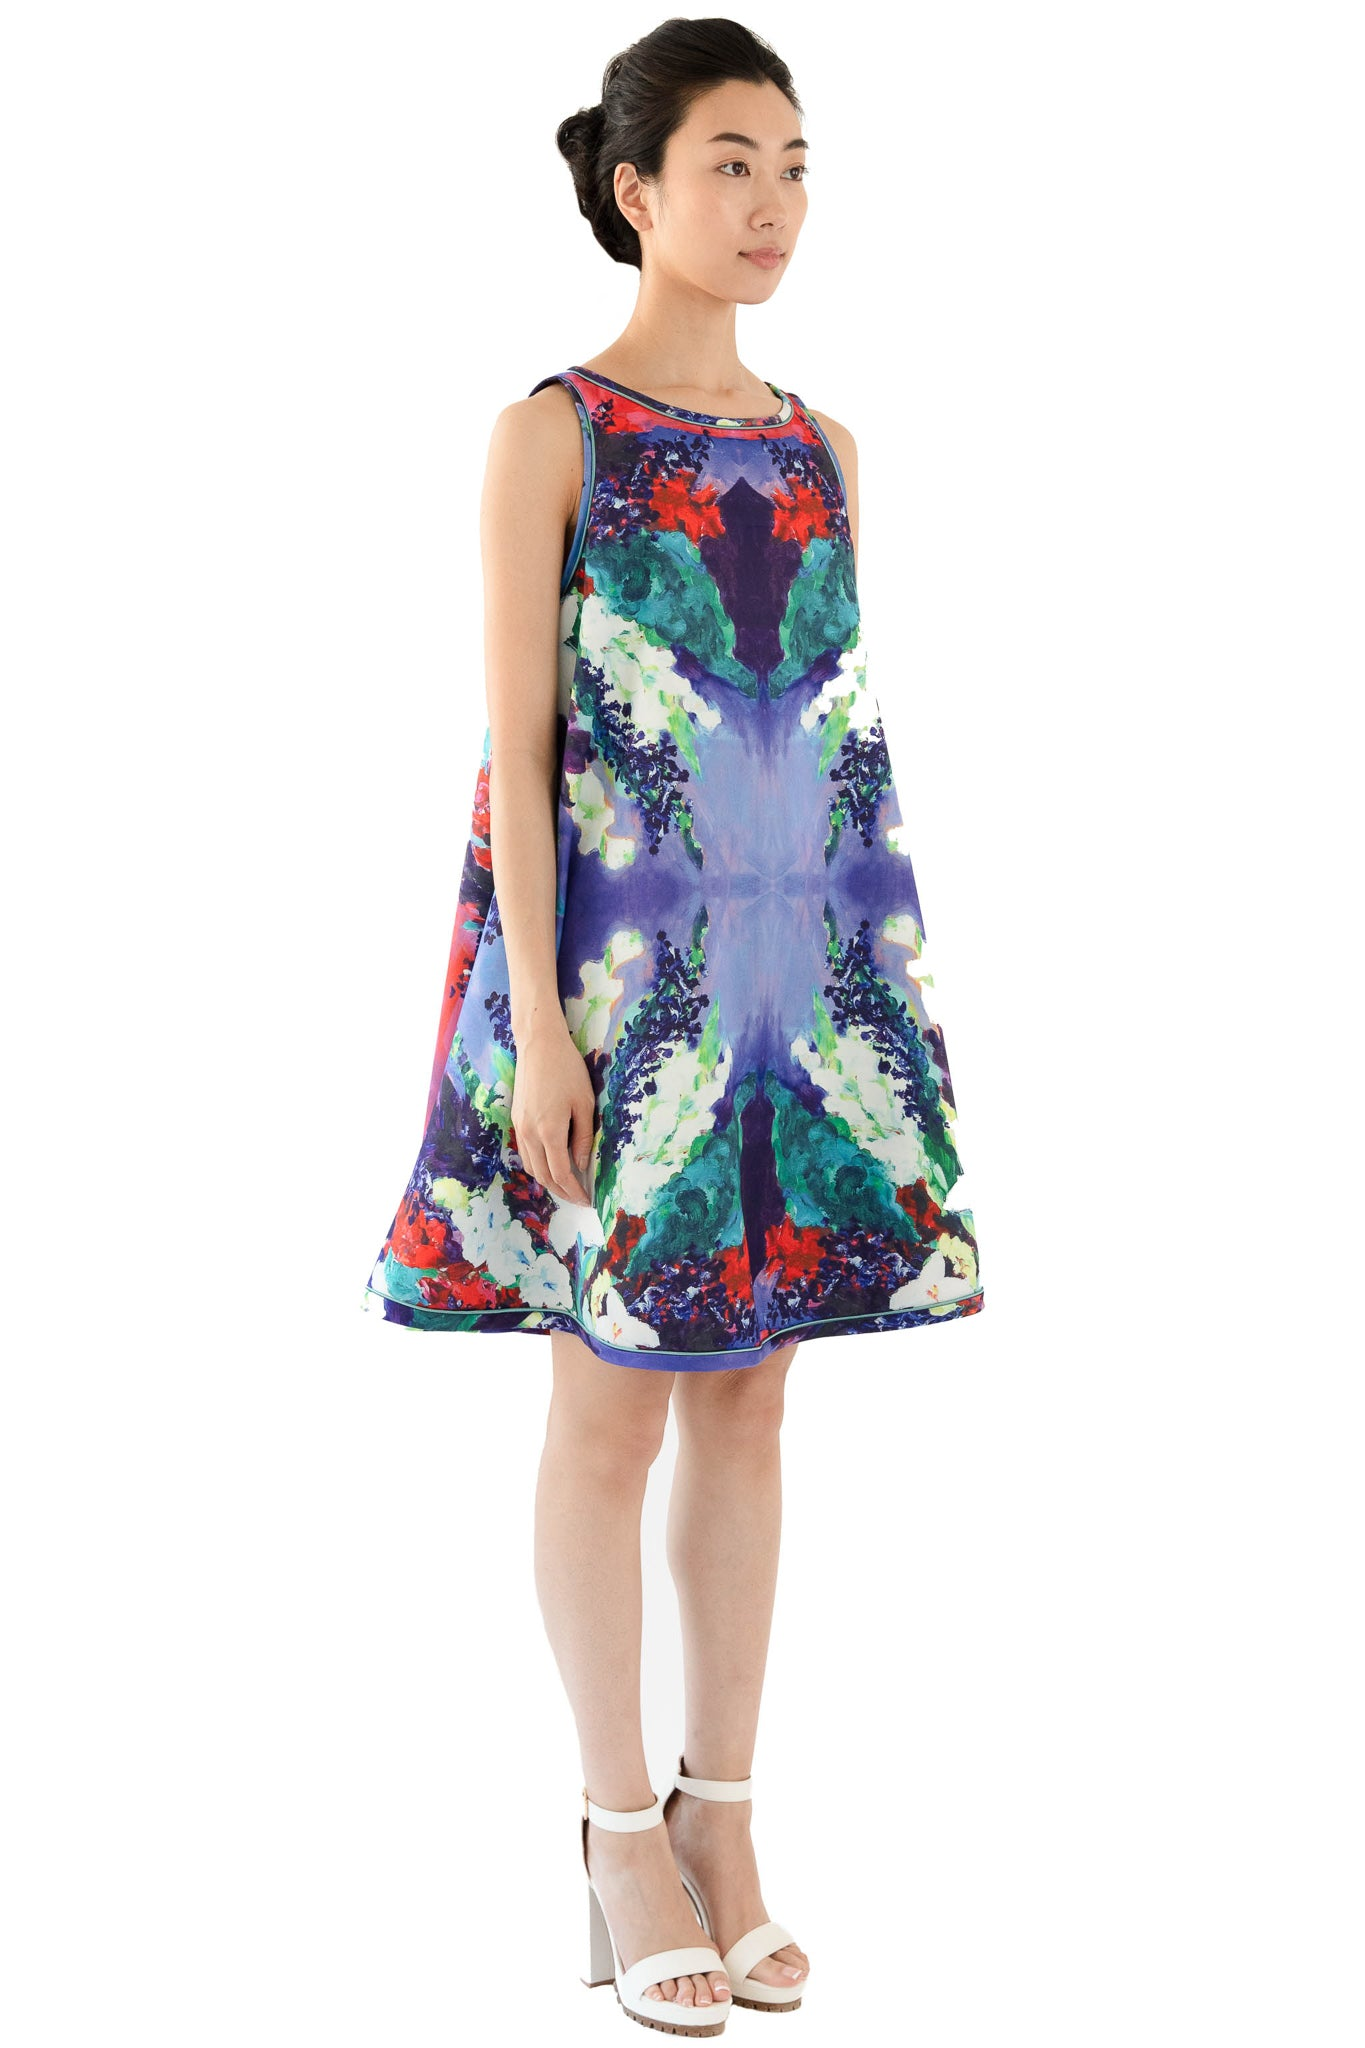 Women's knee length dress with floral print